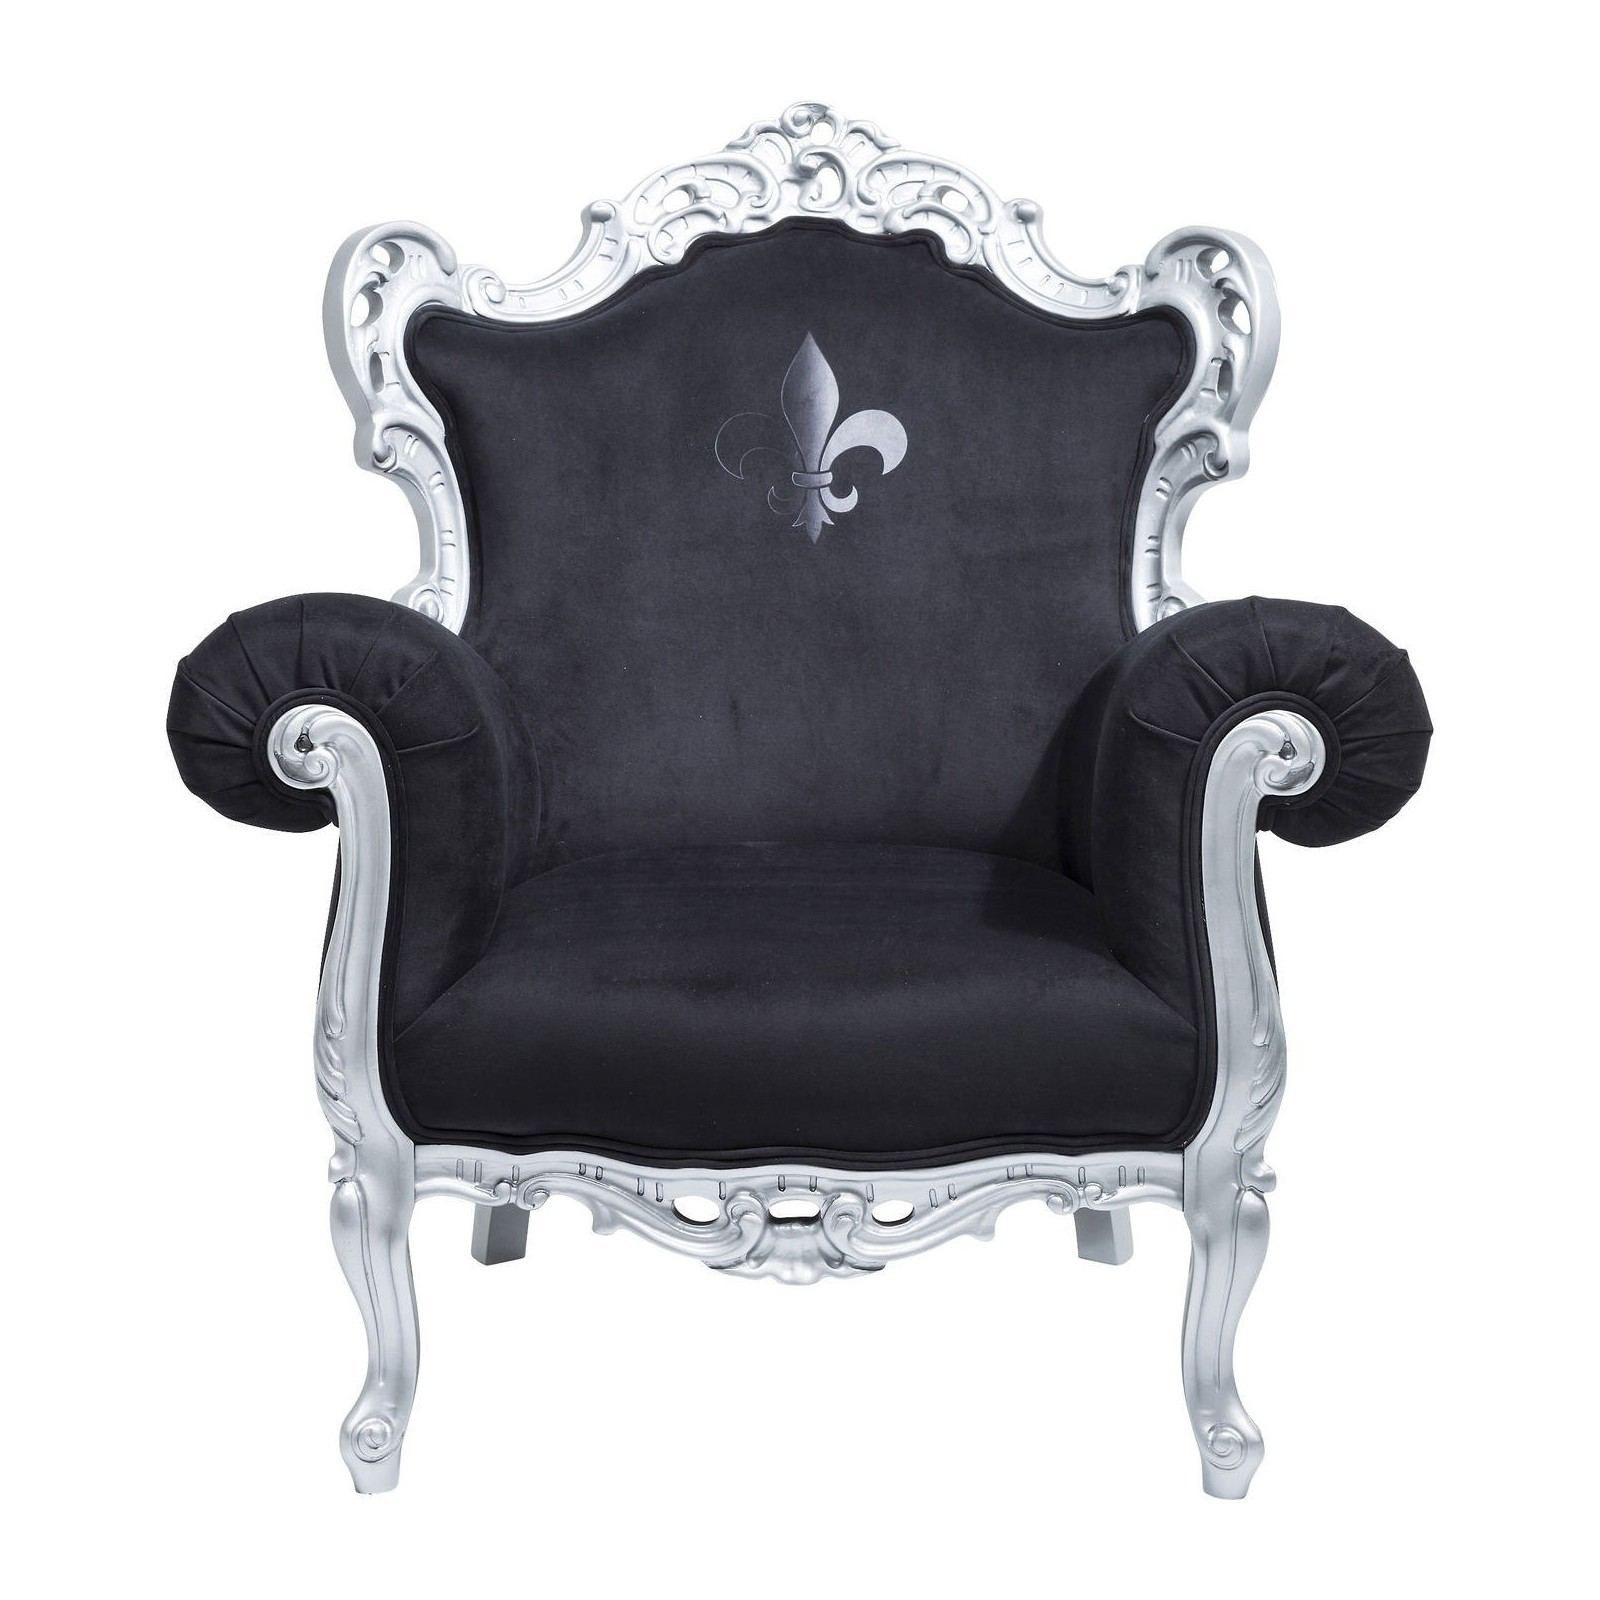 fauteuil baroque noir rockstar by geiss kare design. Black Bedroom Furniture Sets. Home Design Ideas